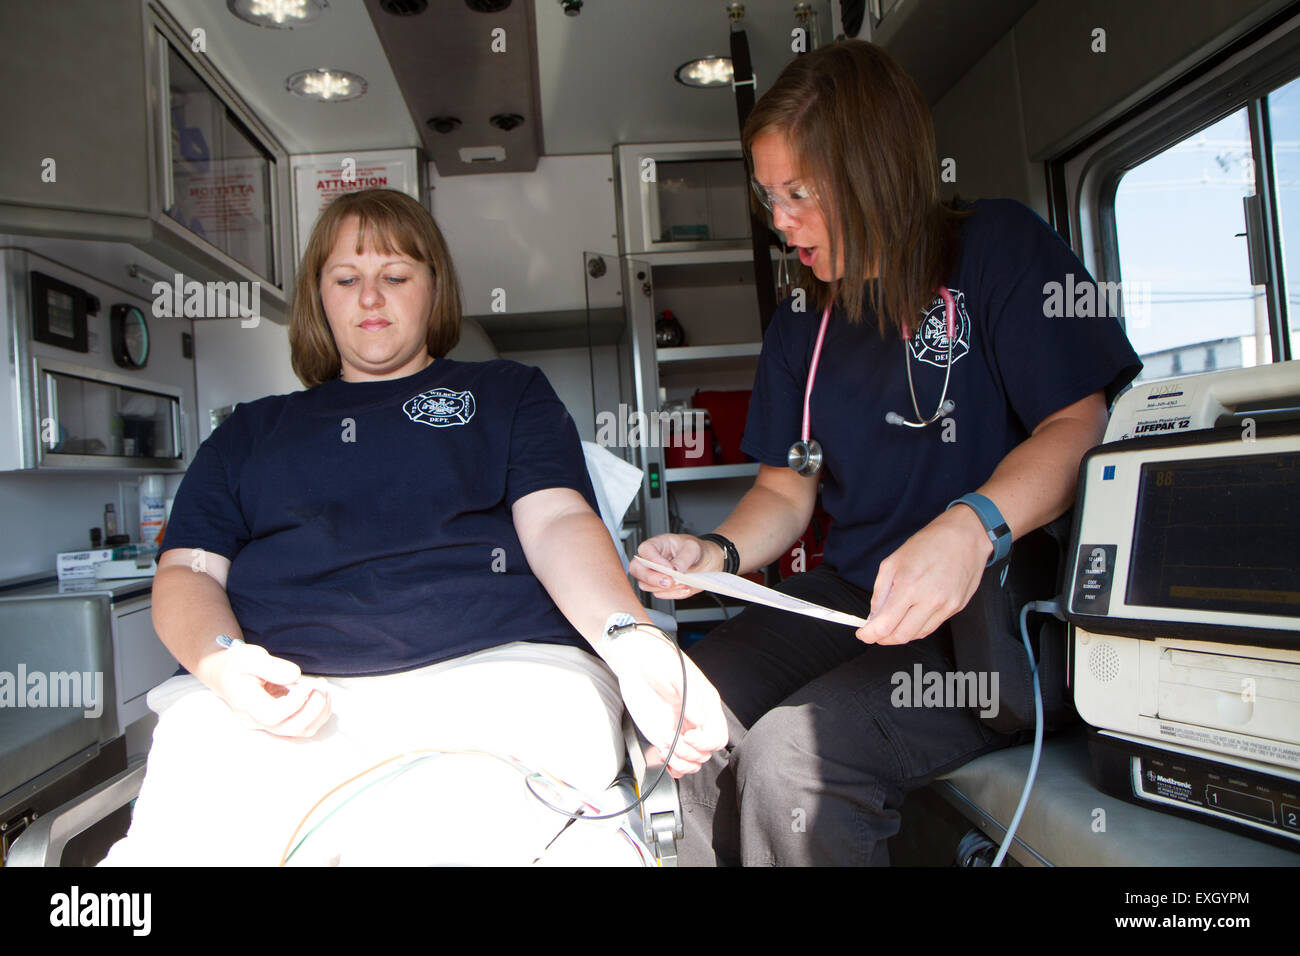 Female paramedics working in the back of an ambulance. Rural volunteer US fire department. - Stock Image